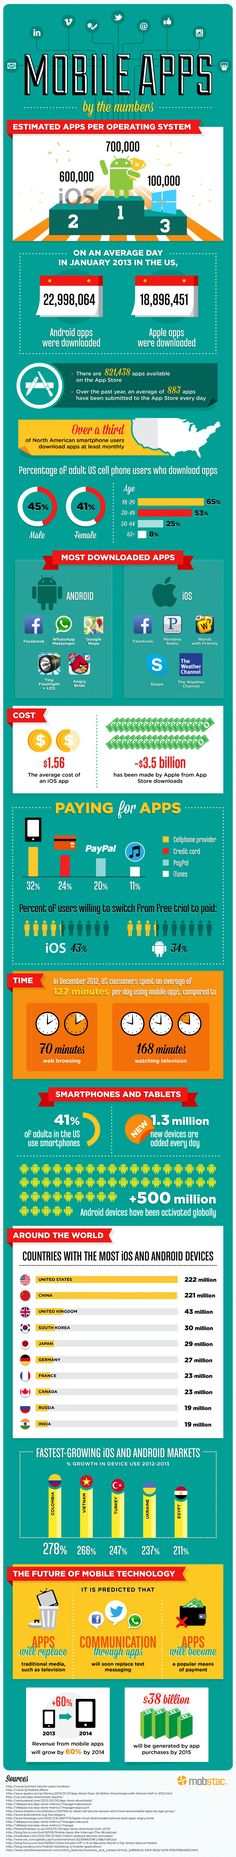 Mobile apps by the numbers - Infographic